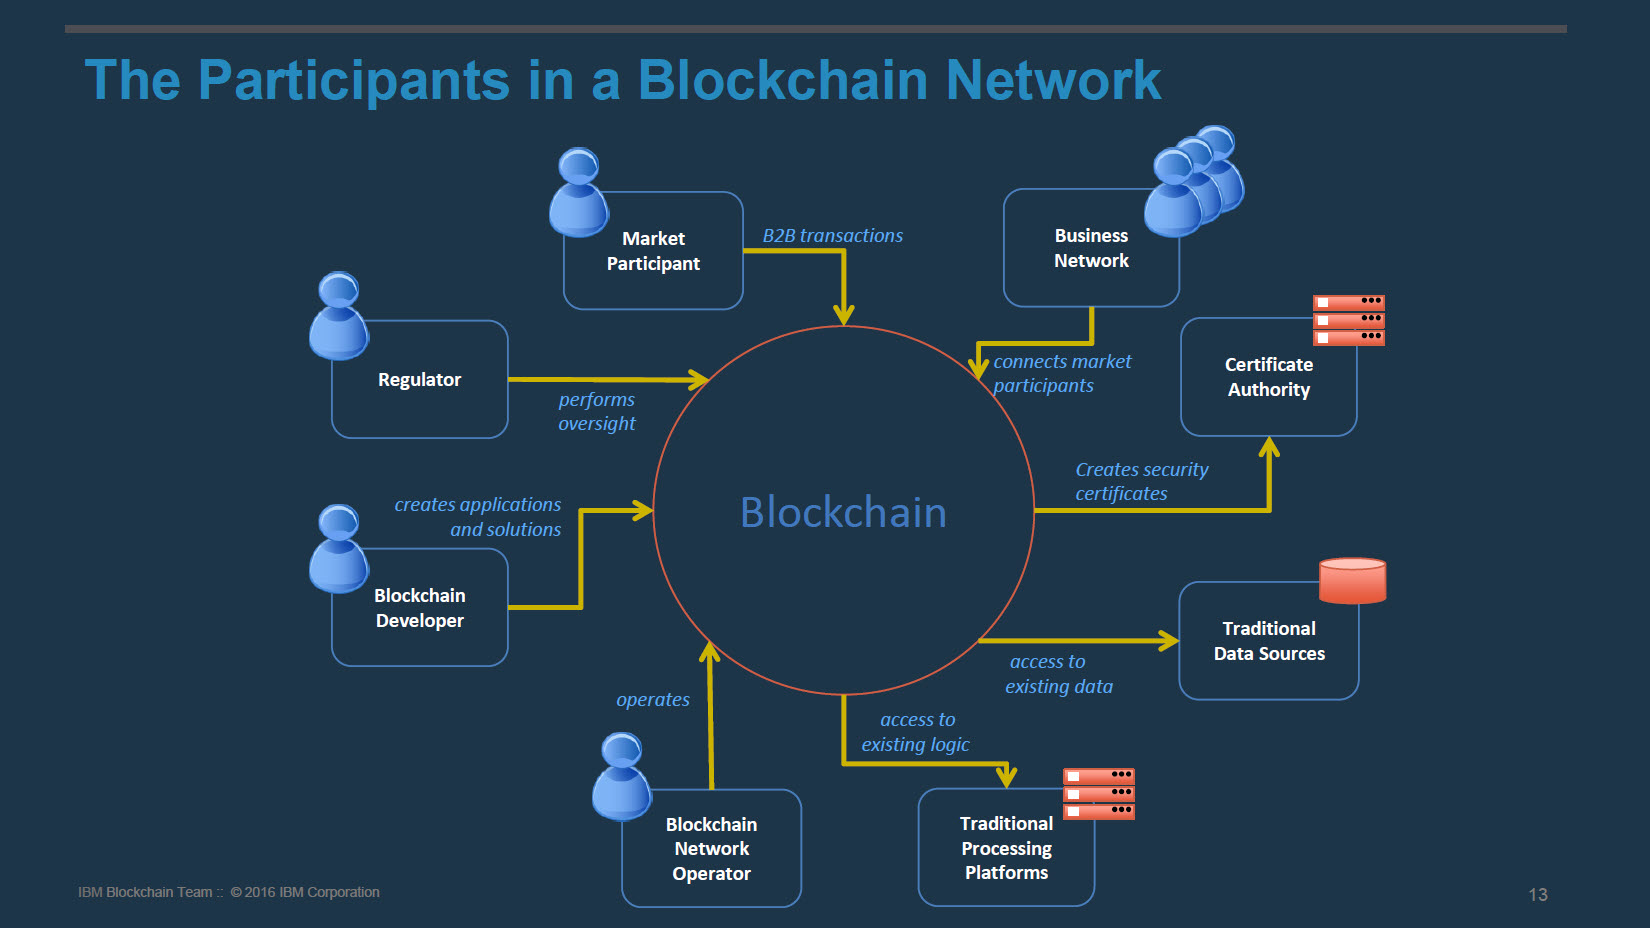 Hyperledger Blockchain participants in the network